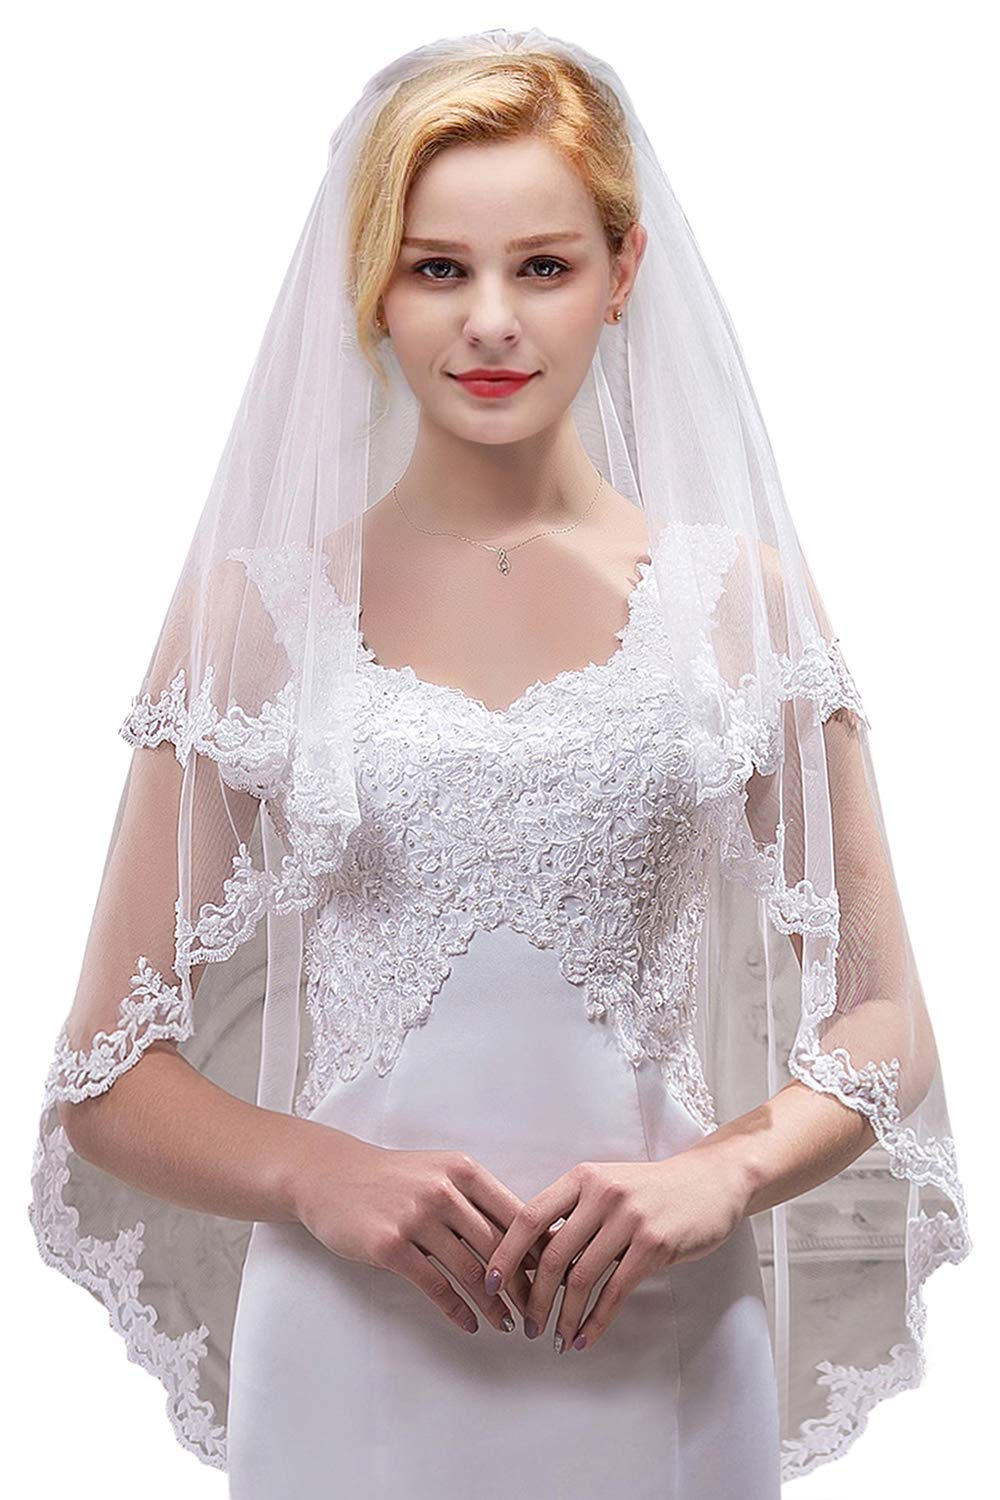 Women's Bridal Tulle Veils with Comb Lace Edge Wedding Veils for Bride,White by MisShow